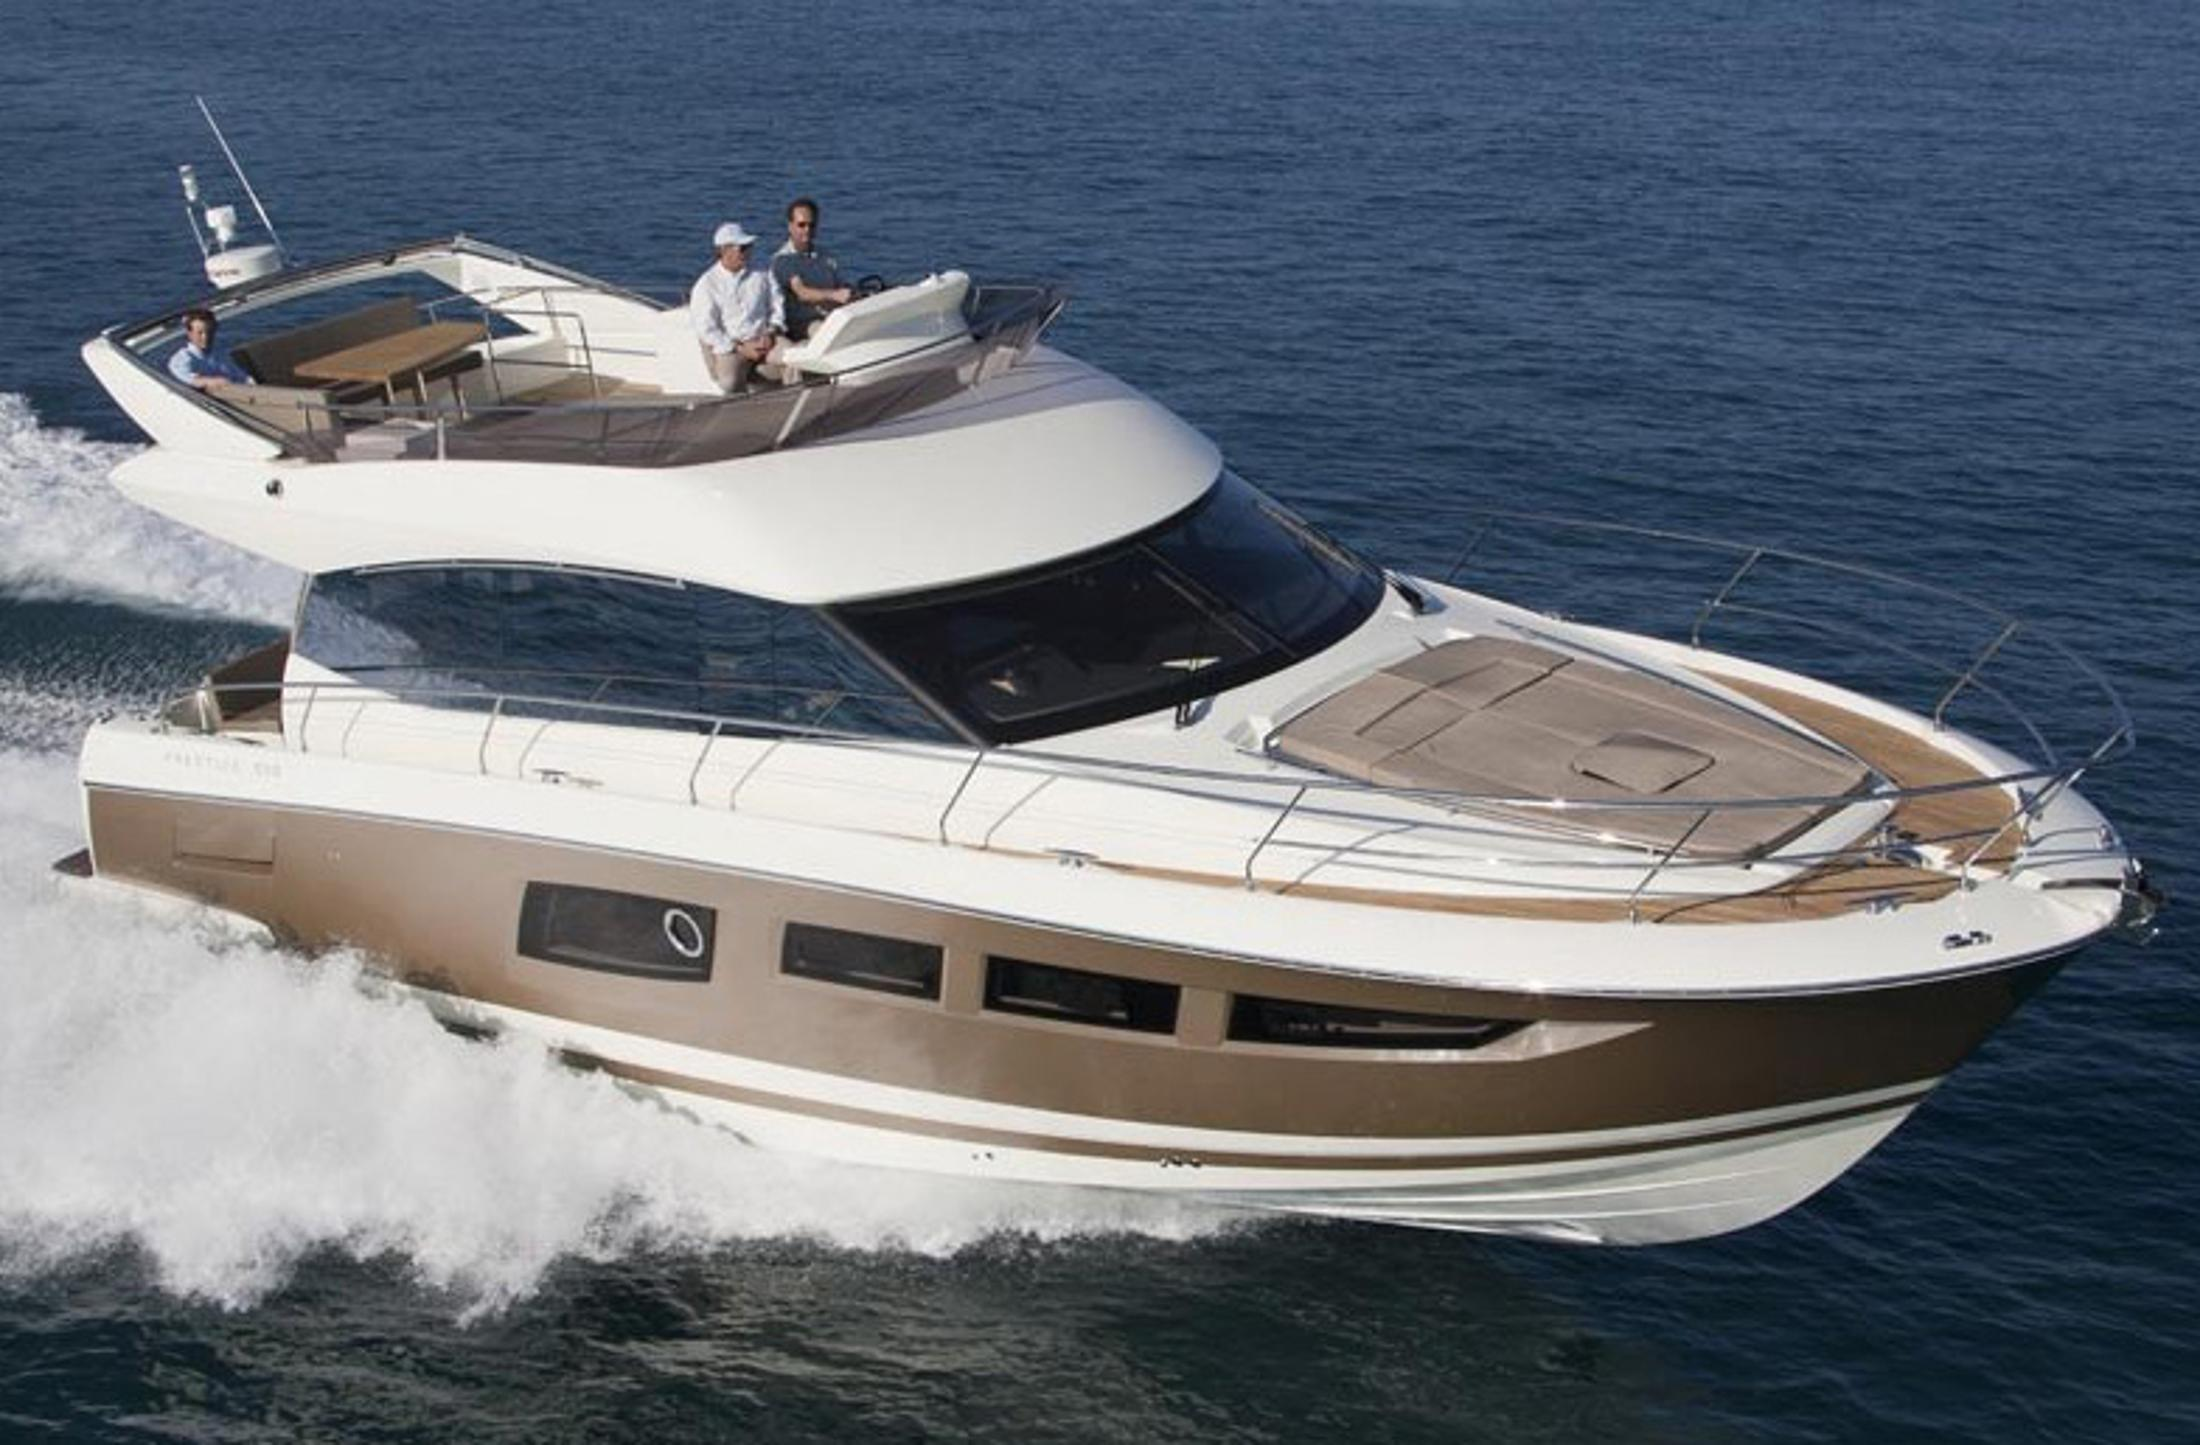 Used prestige yachts for sale for 50 ft motor yachts for sale